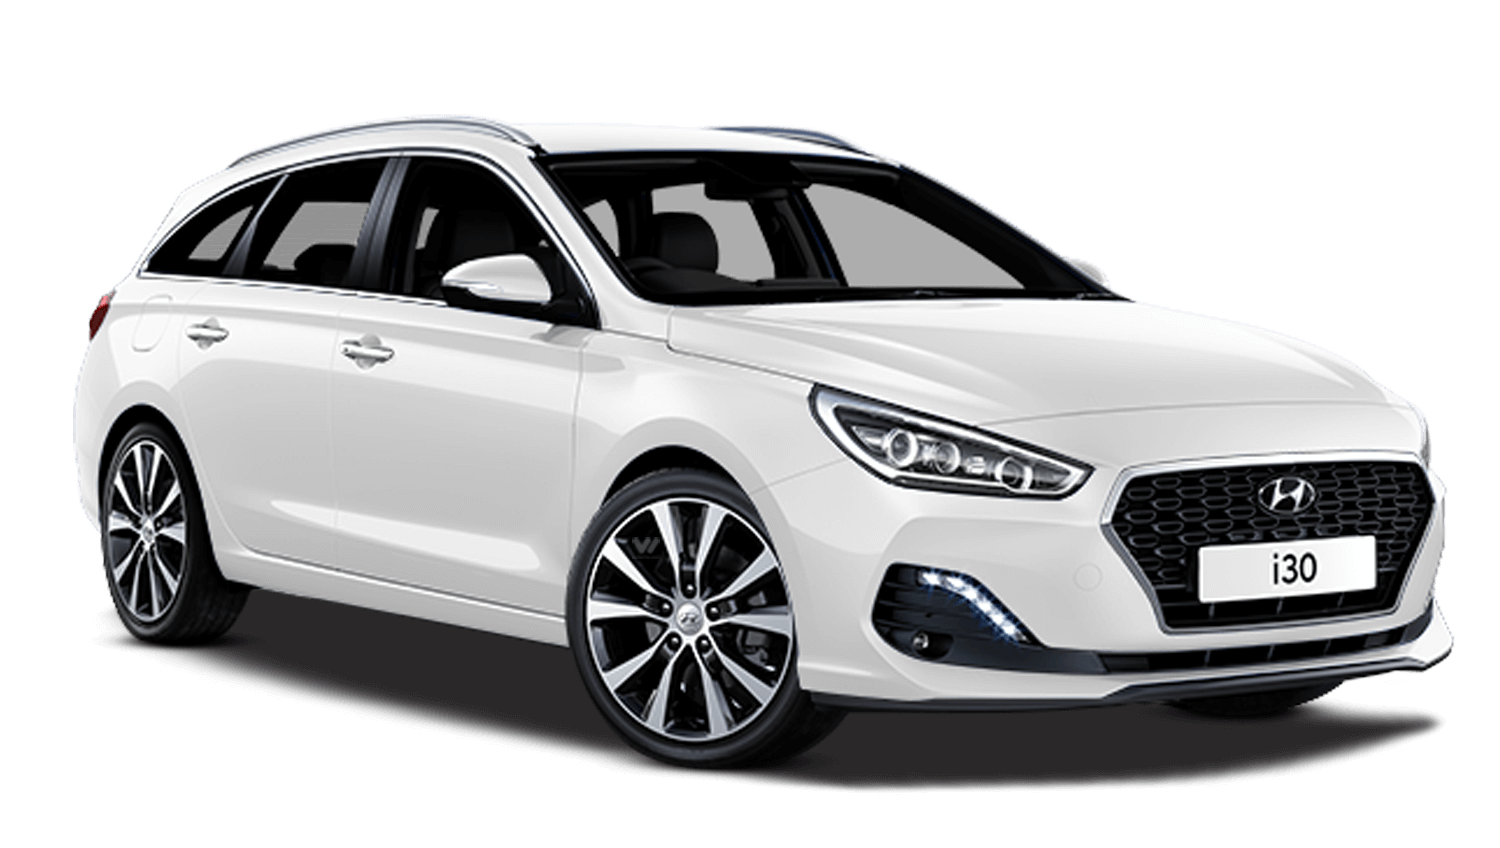 Polar White Hyundai I30 Tourer